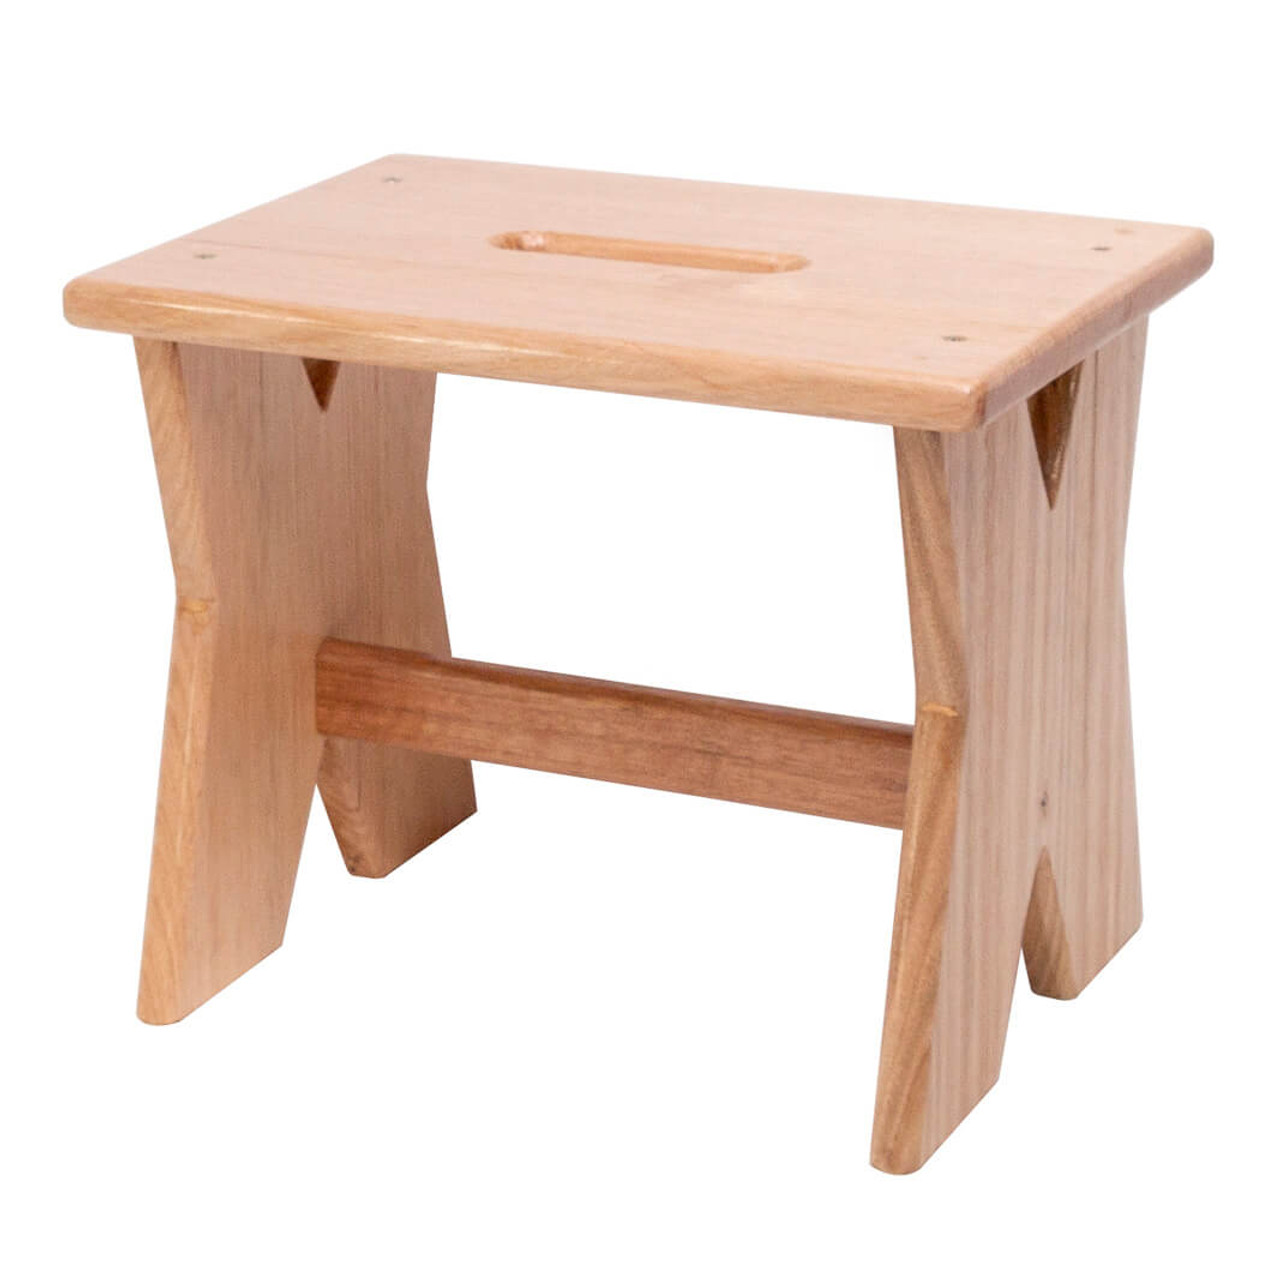 Miraculous Step Stool Wooden Tasmanian Oak 1 Step 11 High Tall Step Stool Gmtry Best Dining Table And Chair Ideas Images Gmtryco